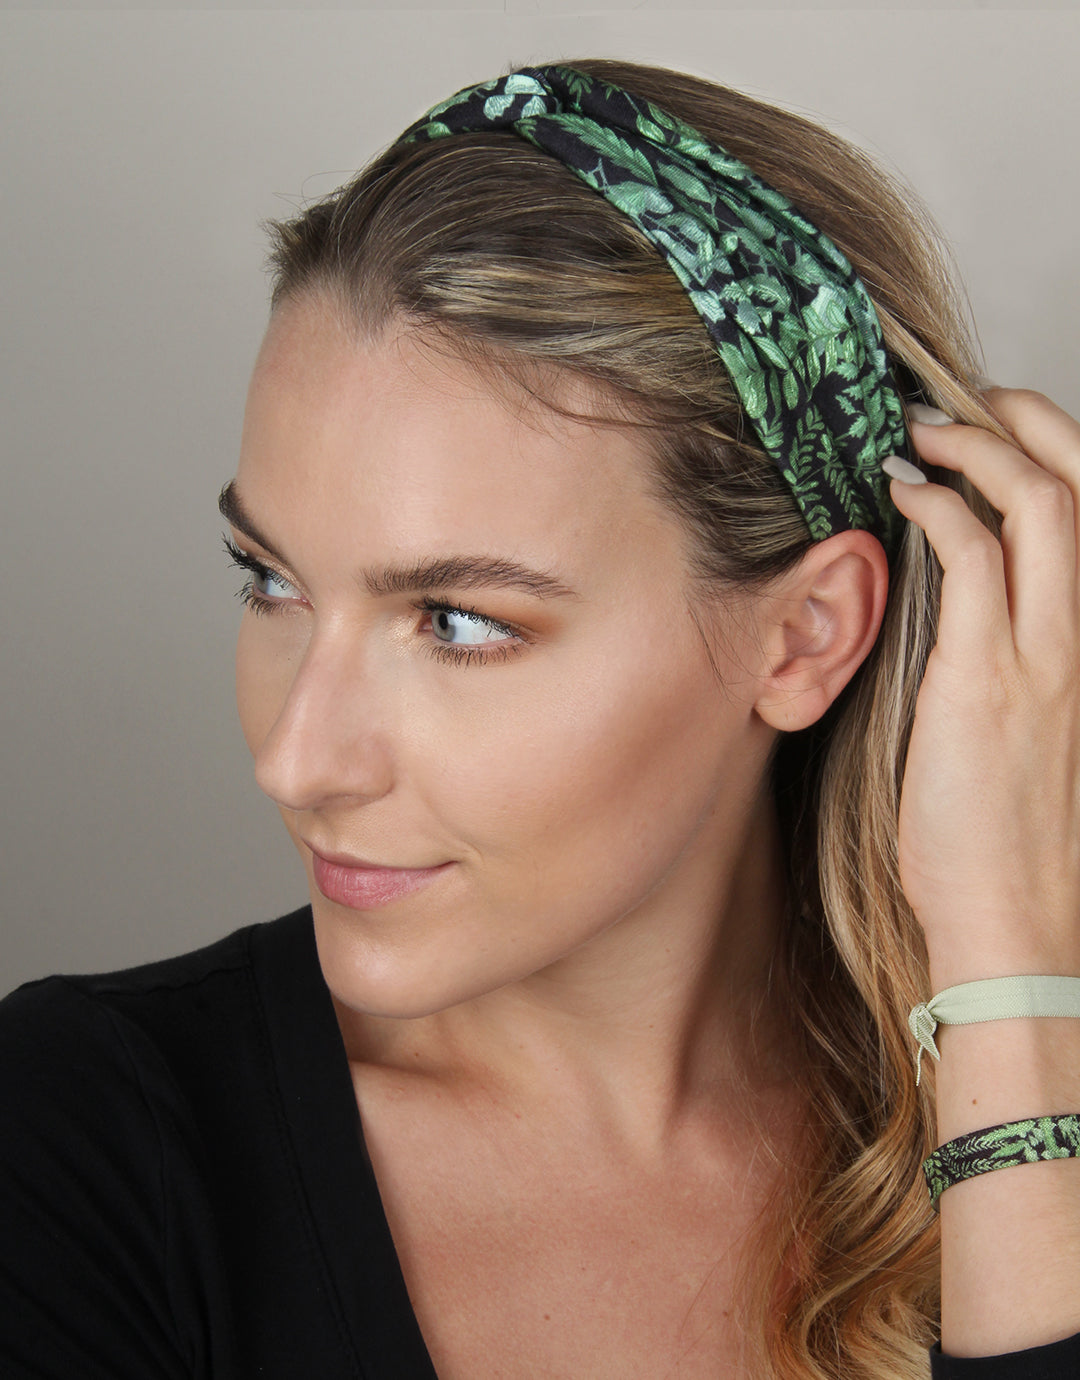 BANDED Women's Headwraps + Hair Accessories - Dark Fern - Twist Headwrap